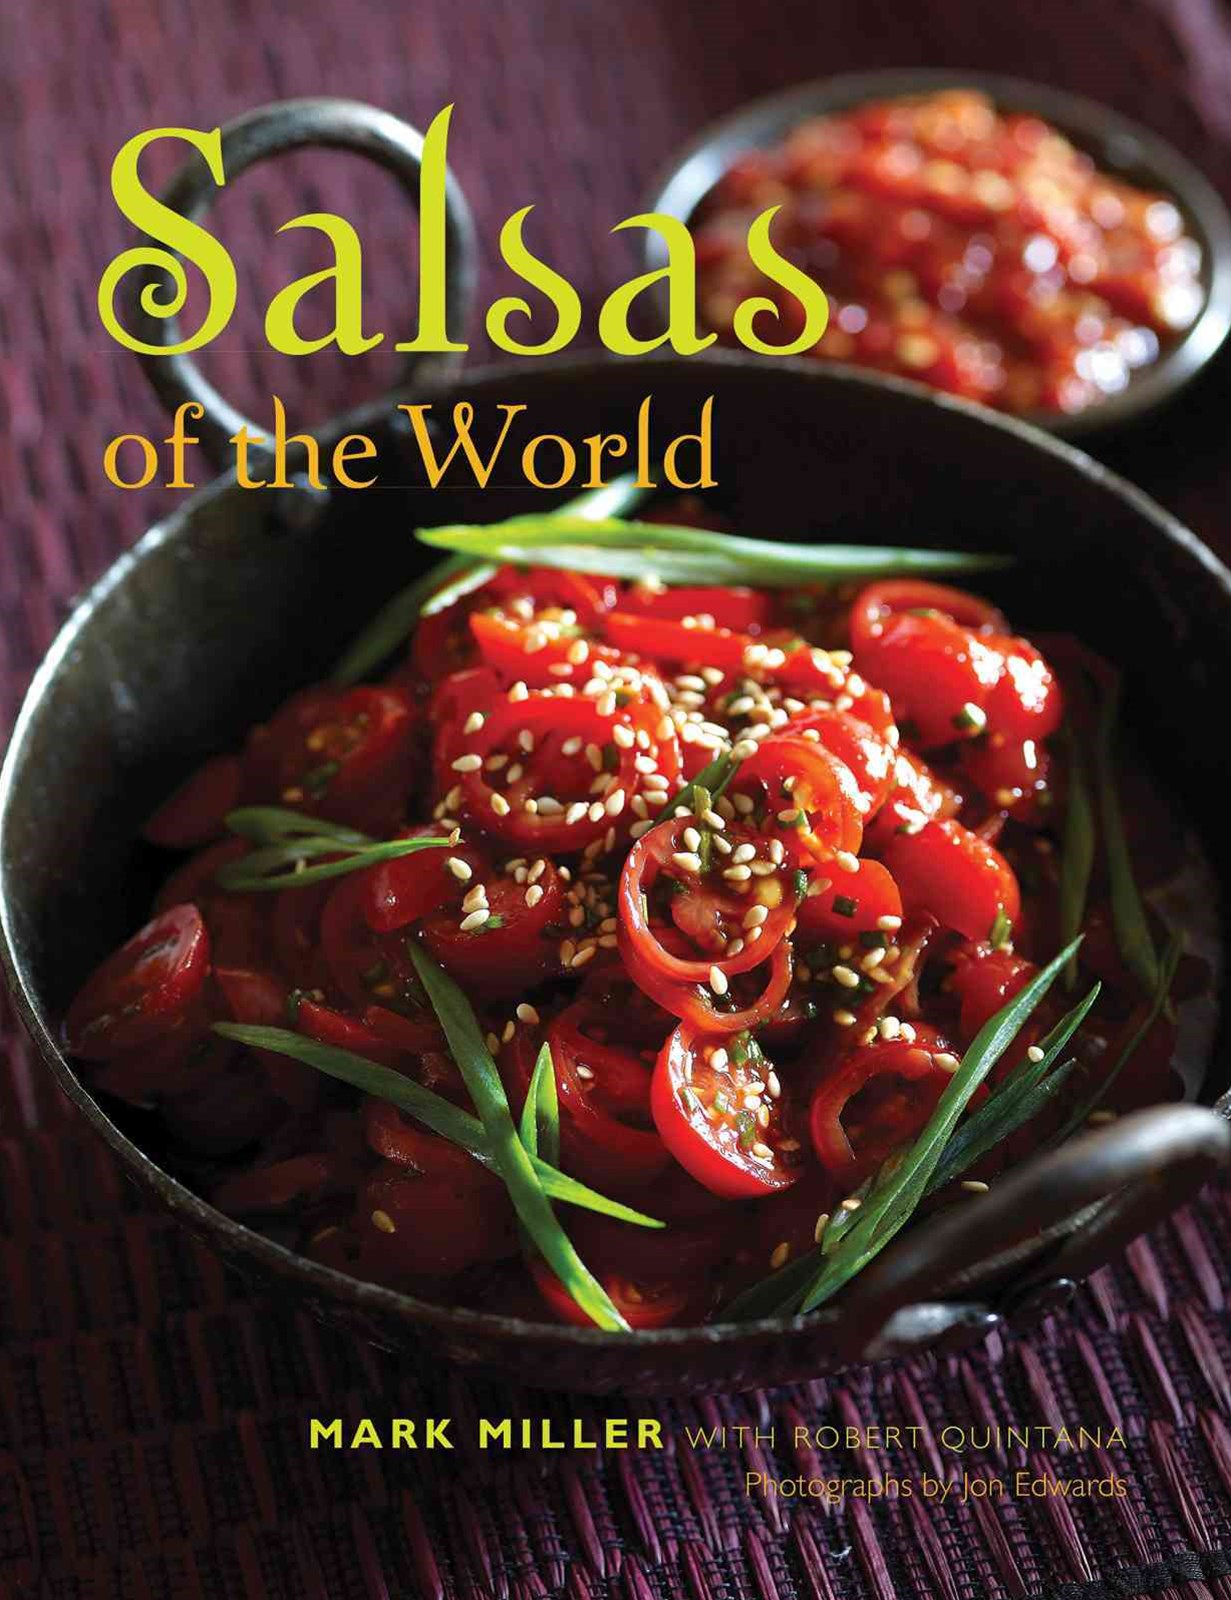 Salsas of the World